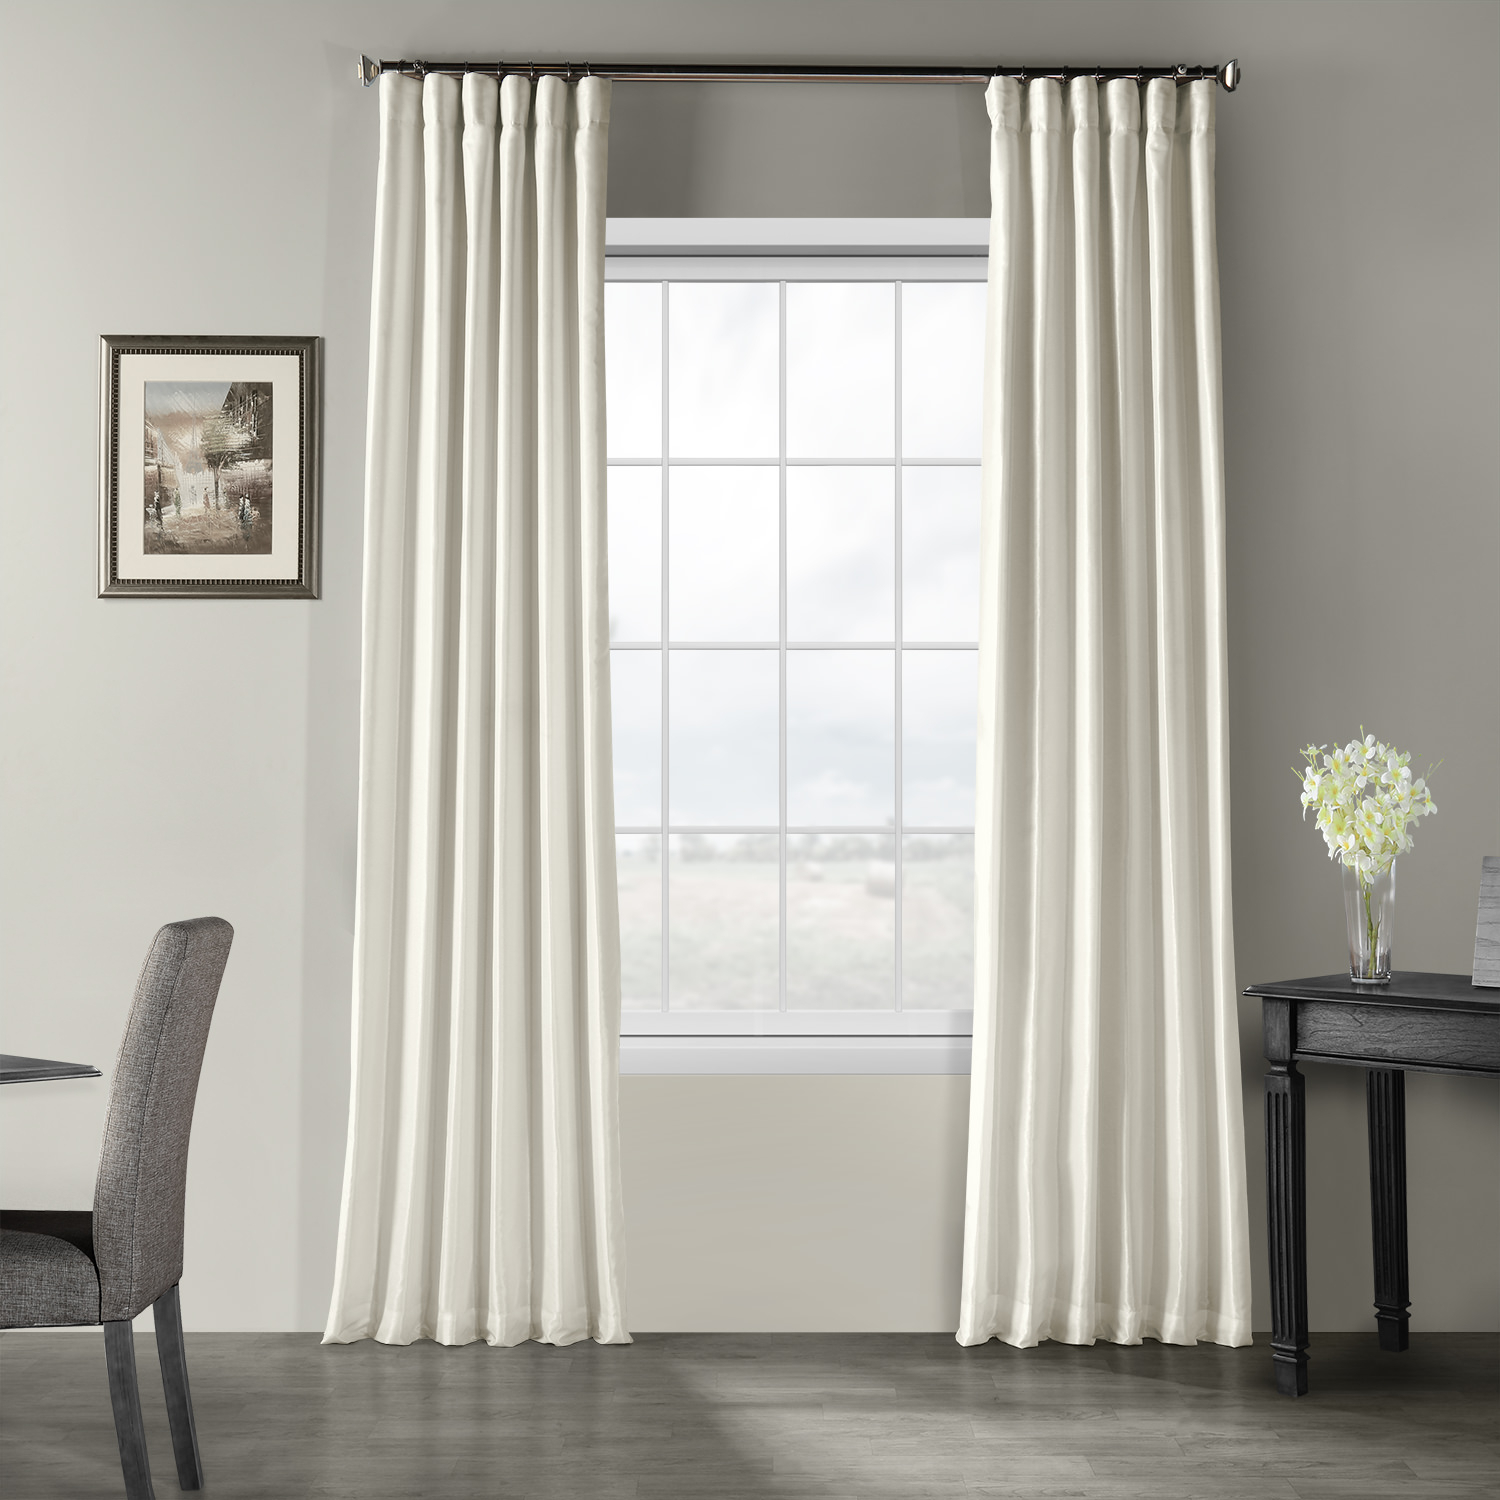 Silk Curtains And Drapes | Silk Curtain Shop Within Signature White Double Layer Sheer Curtain Panels (View 29 of 30)